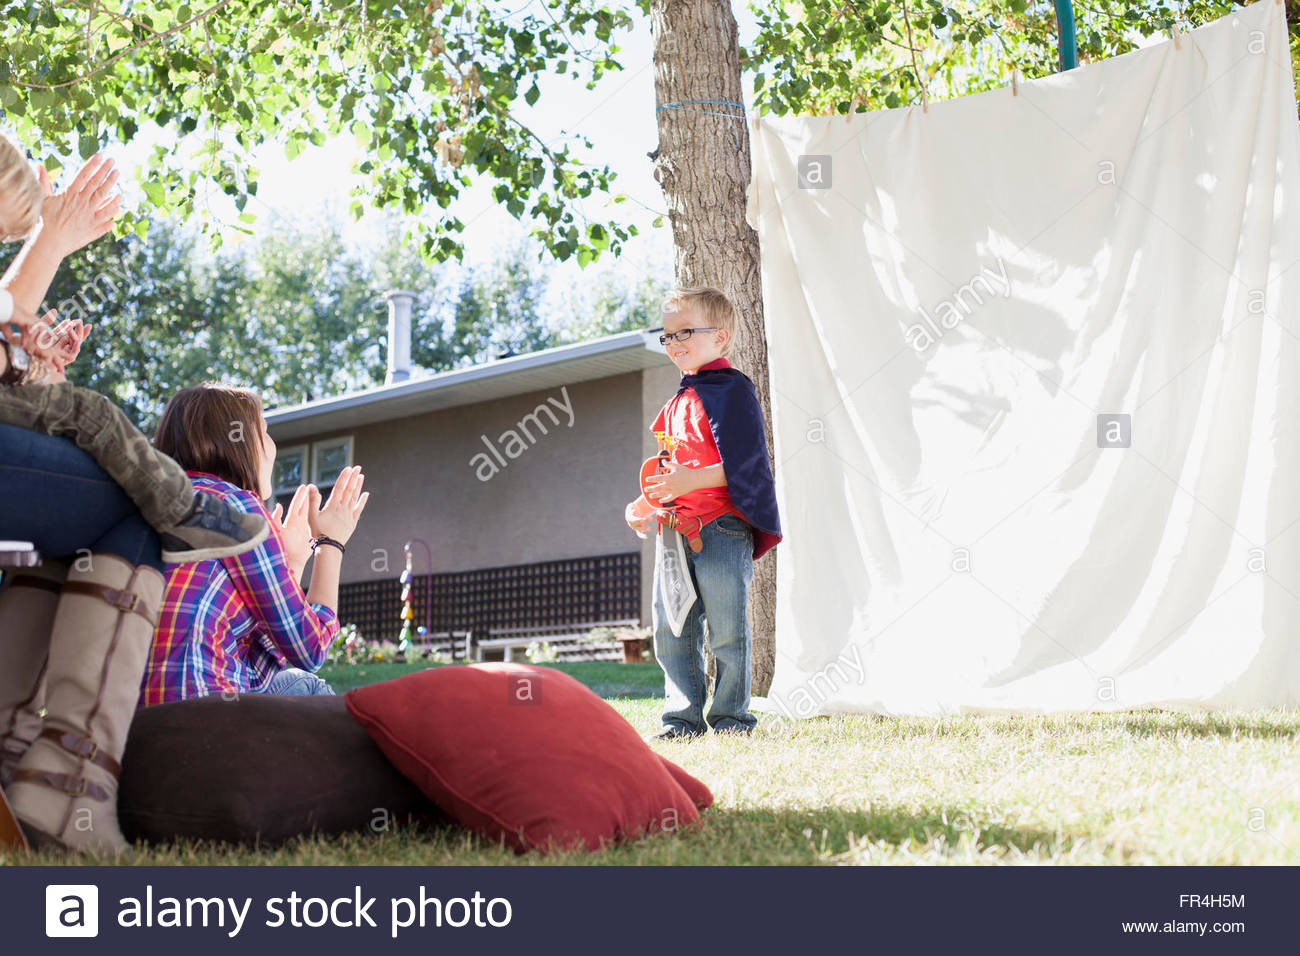 Young boy performing a play for family. - Stock Image